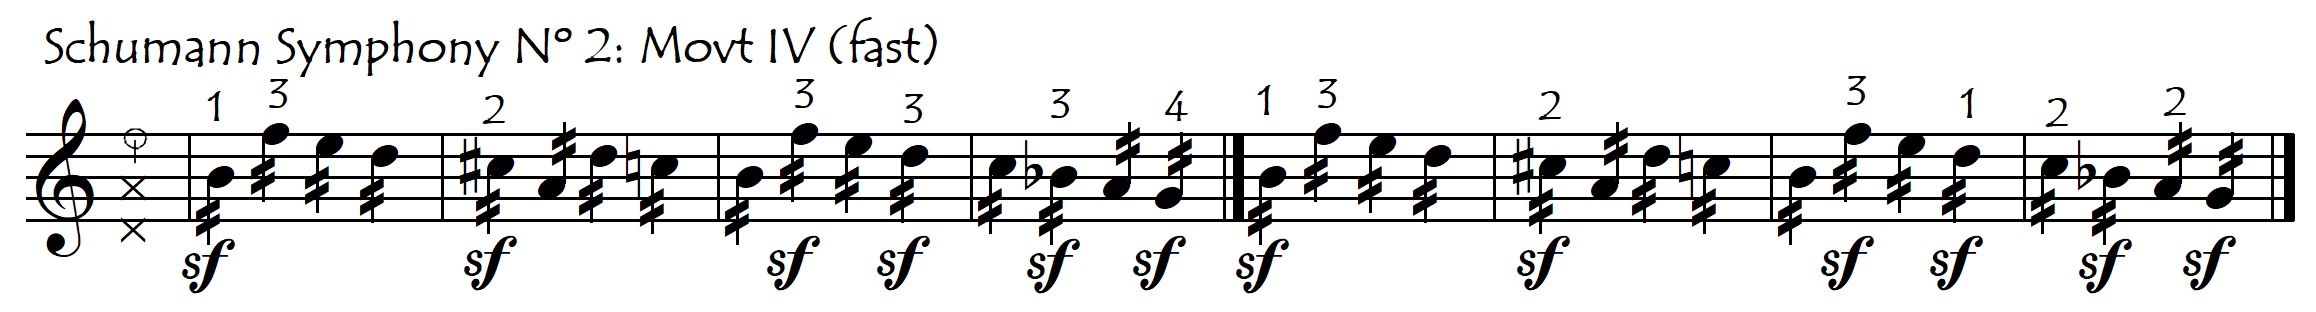 shift on accent or not schumann symph